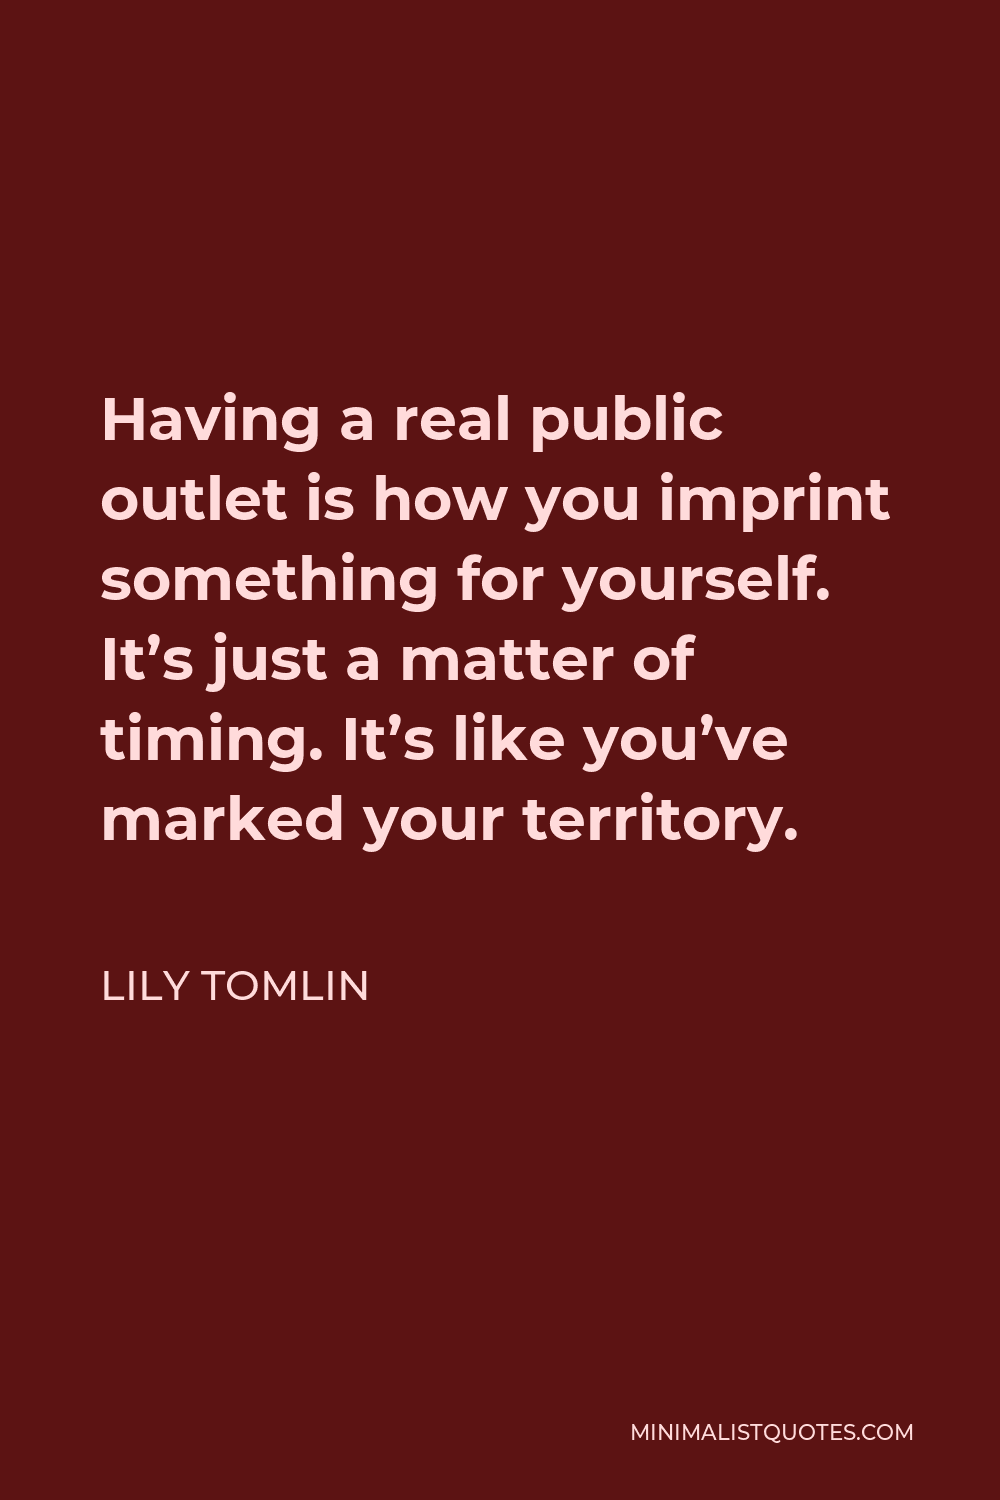 Lily Tomlin Quote - Having a real public outlet is how you imprint something for yourself. It's just a matter of timing. It's like you've marked your territory.